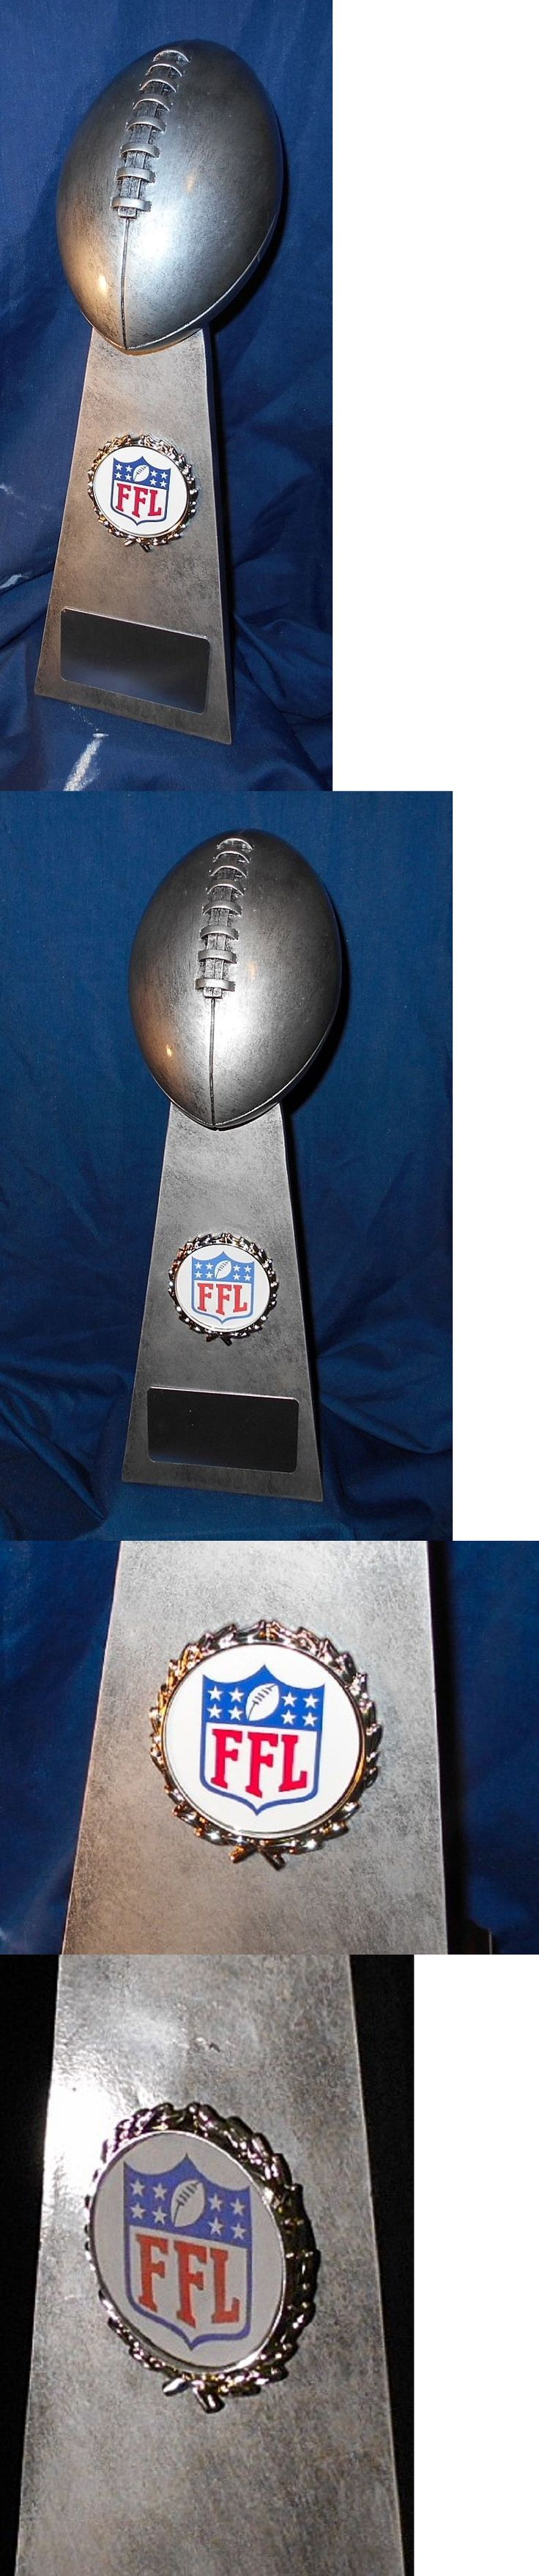 Other Football 2024: New Large 15 Fantasy Football Trophy Lombardi Free Engraving -> BUY IT NOW ONLY: $50 on eBay!